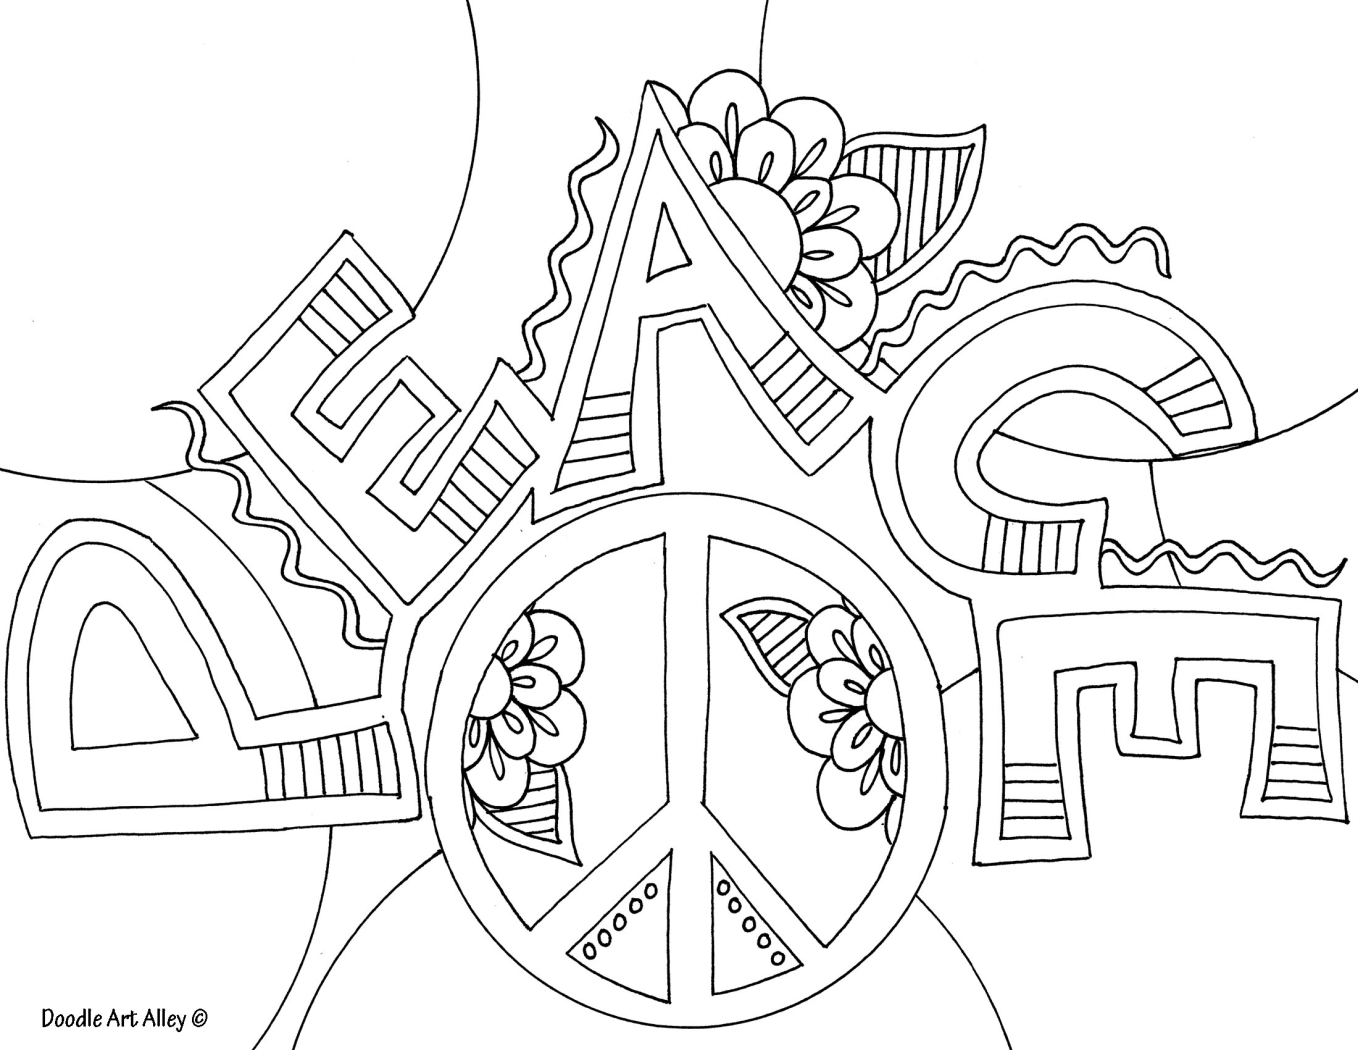 Coloring pages quotes - Find This Pin And More On Coloring Pages